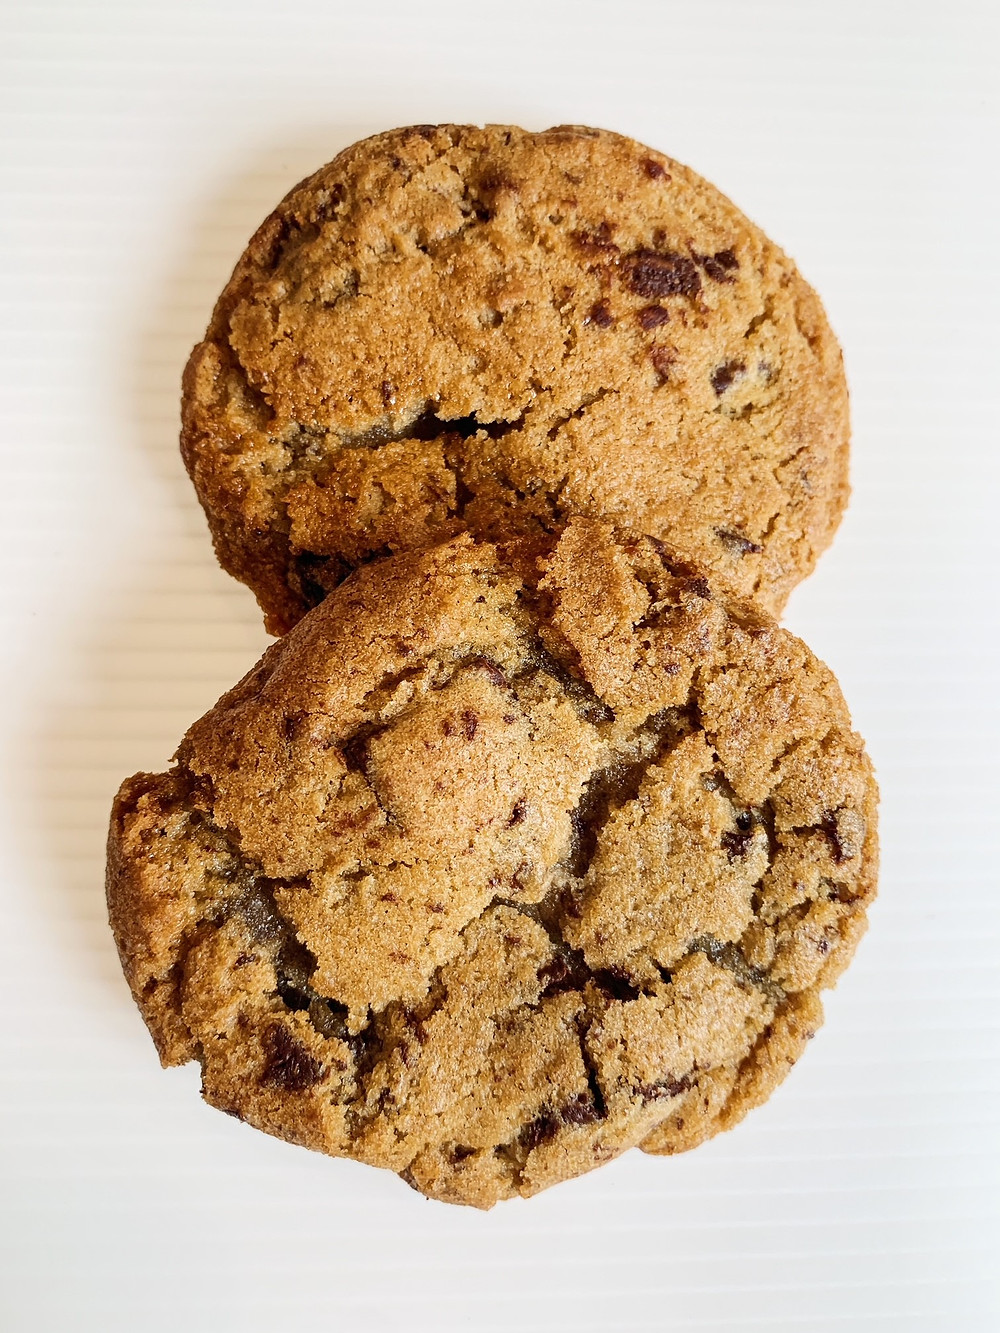 Chocolate Chip Cookies from The Chocolate Bar